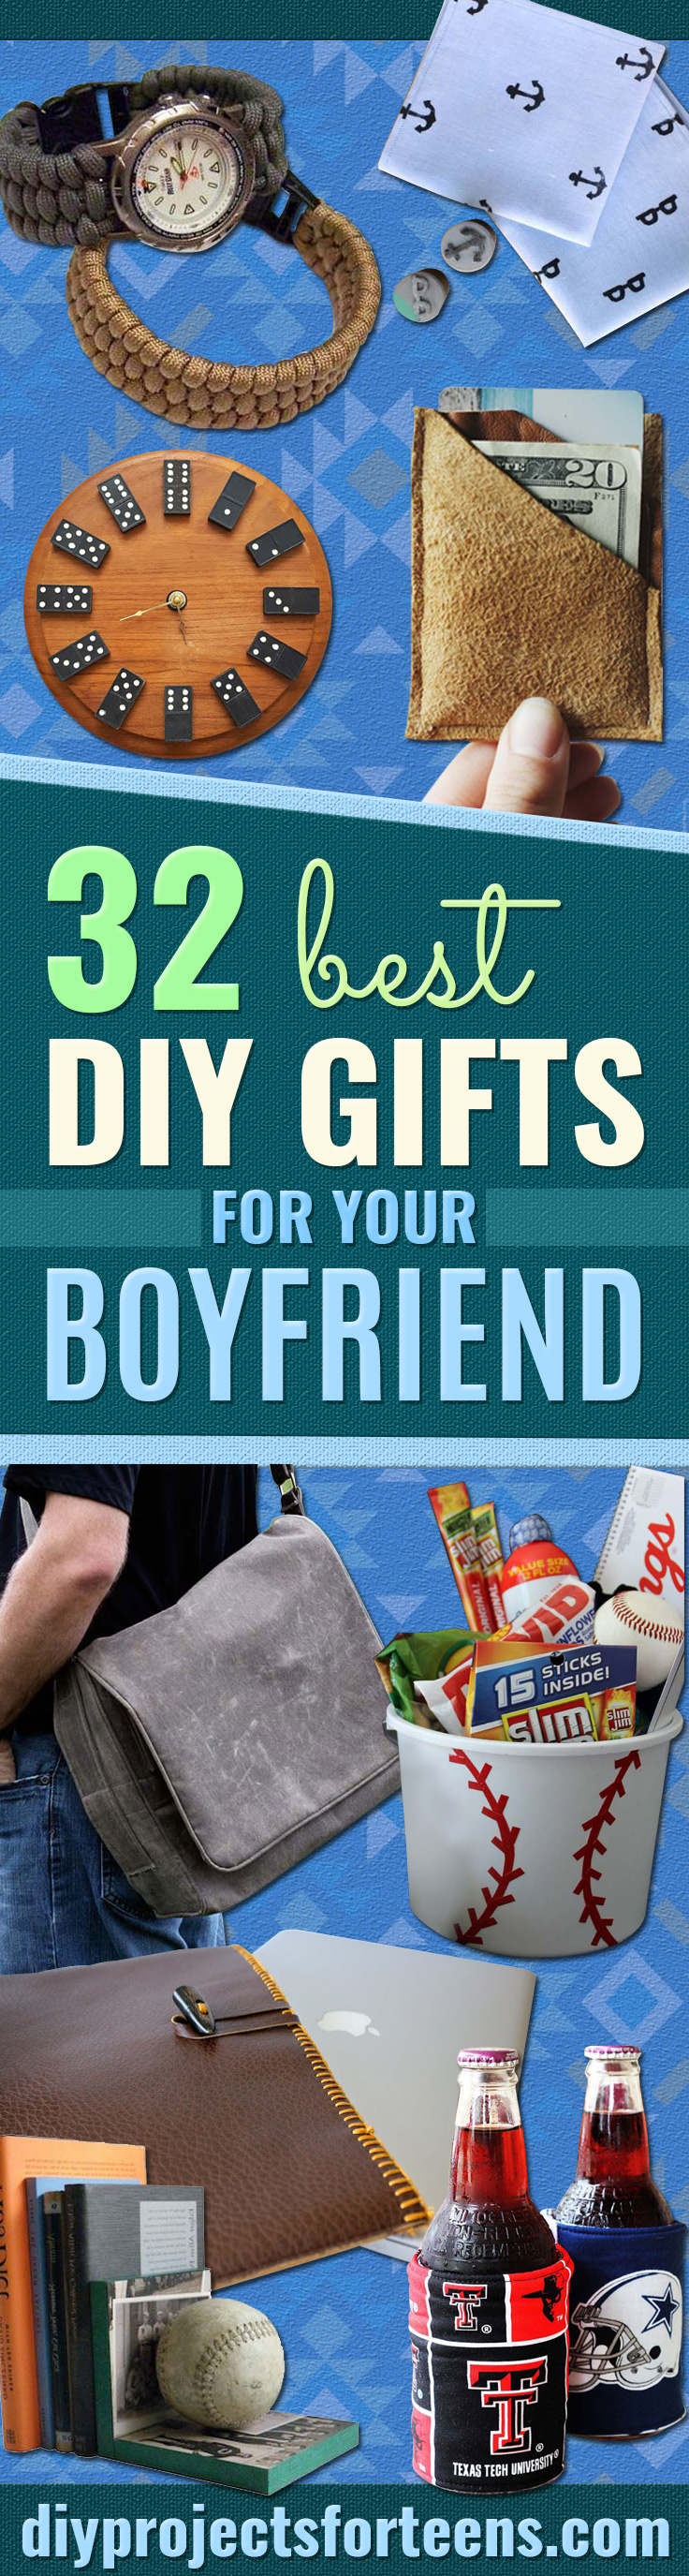 Cool DIY Gifts to Make For Your Boyfriend - Easy, Cheap and Awesome Gift Ideas to Make for Guys - Fun Crafts and Presents to Give to Boyfriends - Men Love These Gift Card Holders, Mason Jar Kits, Thoughtful Handmade Christmas Gifts - DIY Projects for Teens